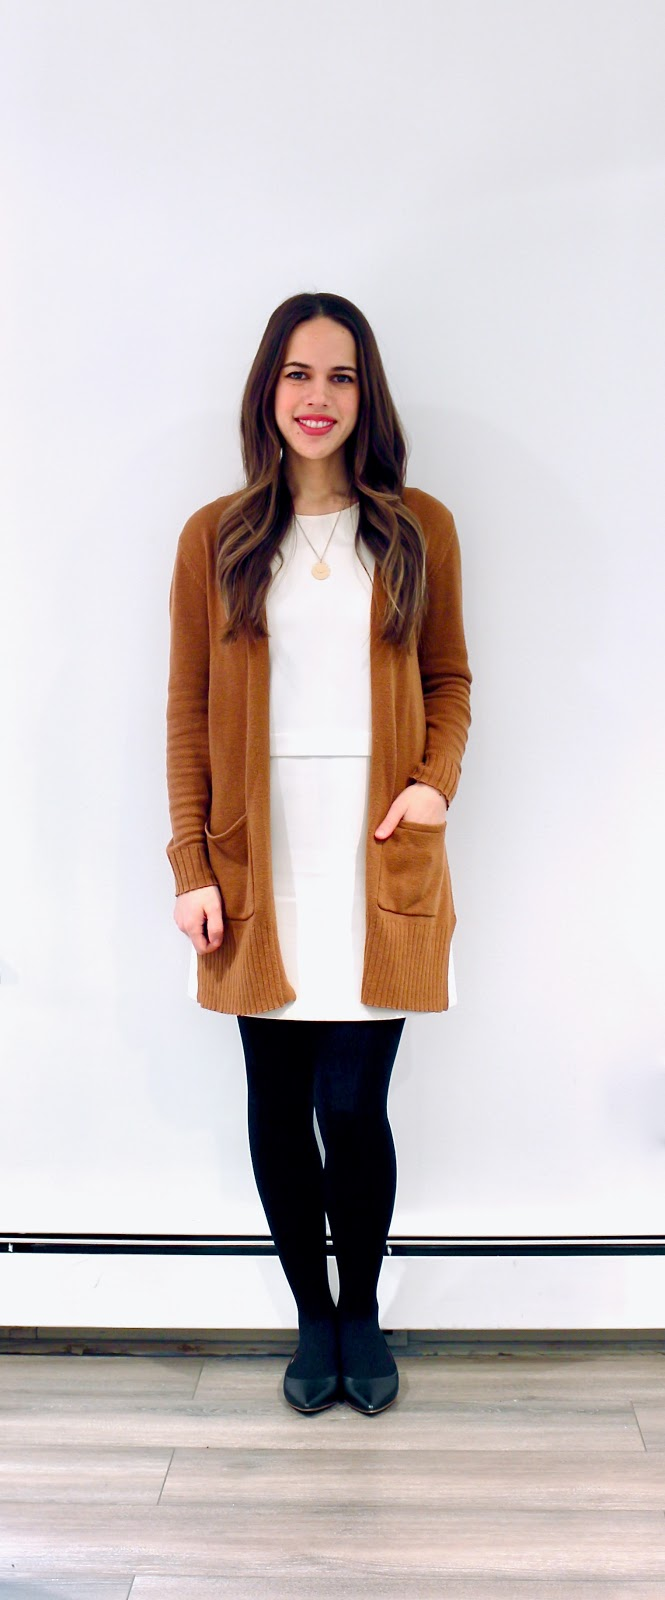 Jules in Flats - White Shift Dress with Cognac Cardigan (Business Casual Winter Workwear on a Budget)